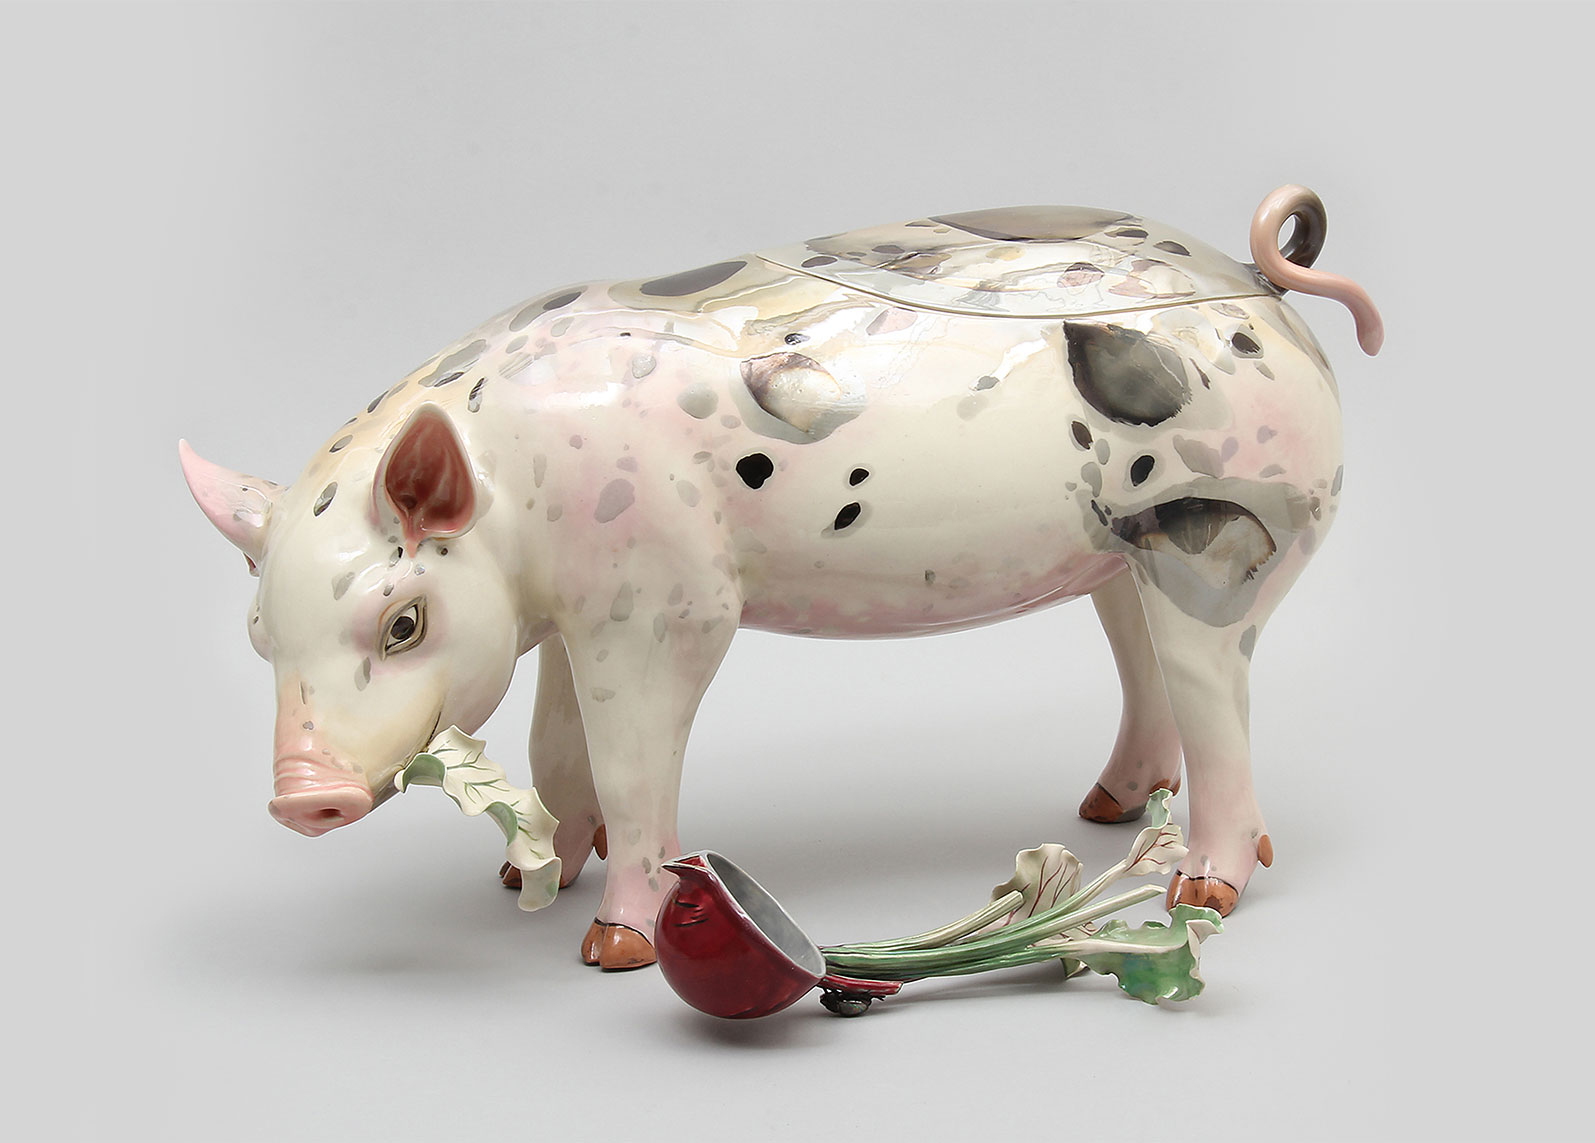 Soup tureen in the shape of a pig